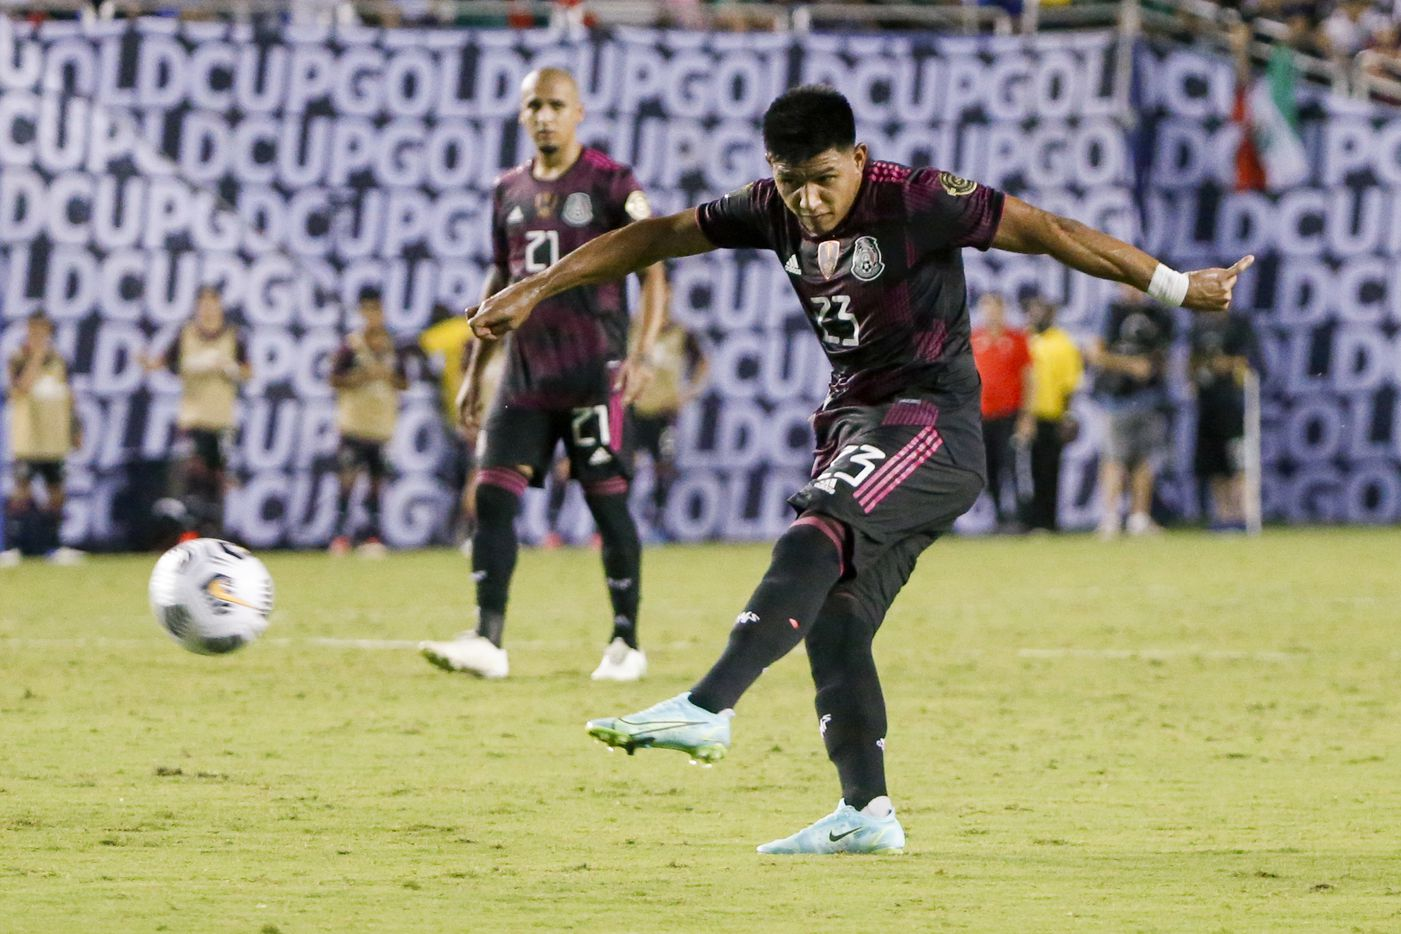 Mexico midfielder Jesús Gallardo (23) crosses the ball to a teammate during the second half of a CONCACAF Gold Cup Group A soccer match at the Cotton Bowl on Sunday, July 18, 2021, in Dallas. (Elias Valverde II/The Dallas Morning News)